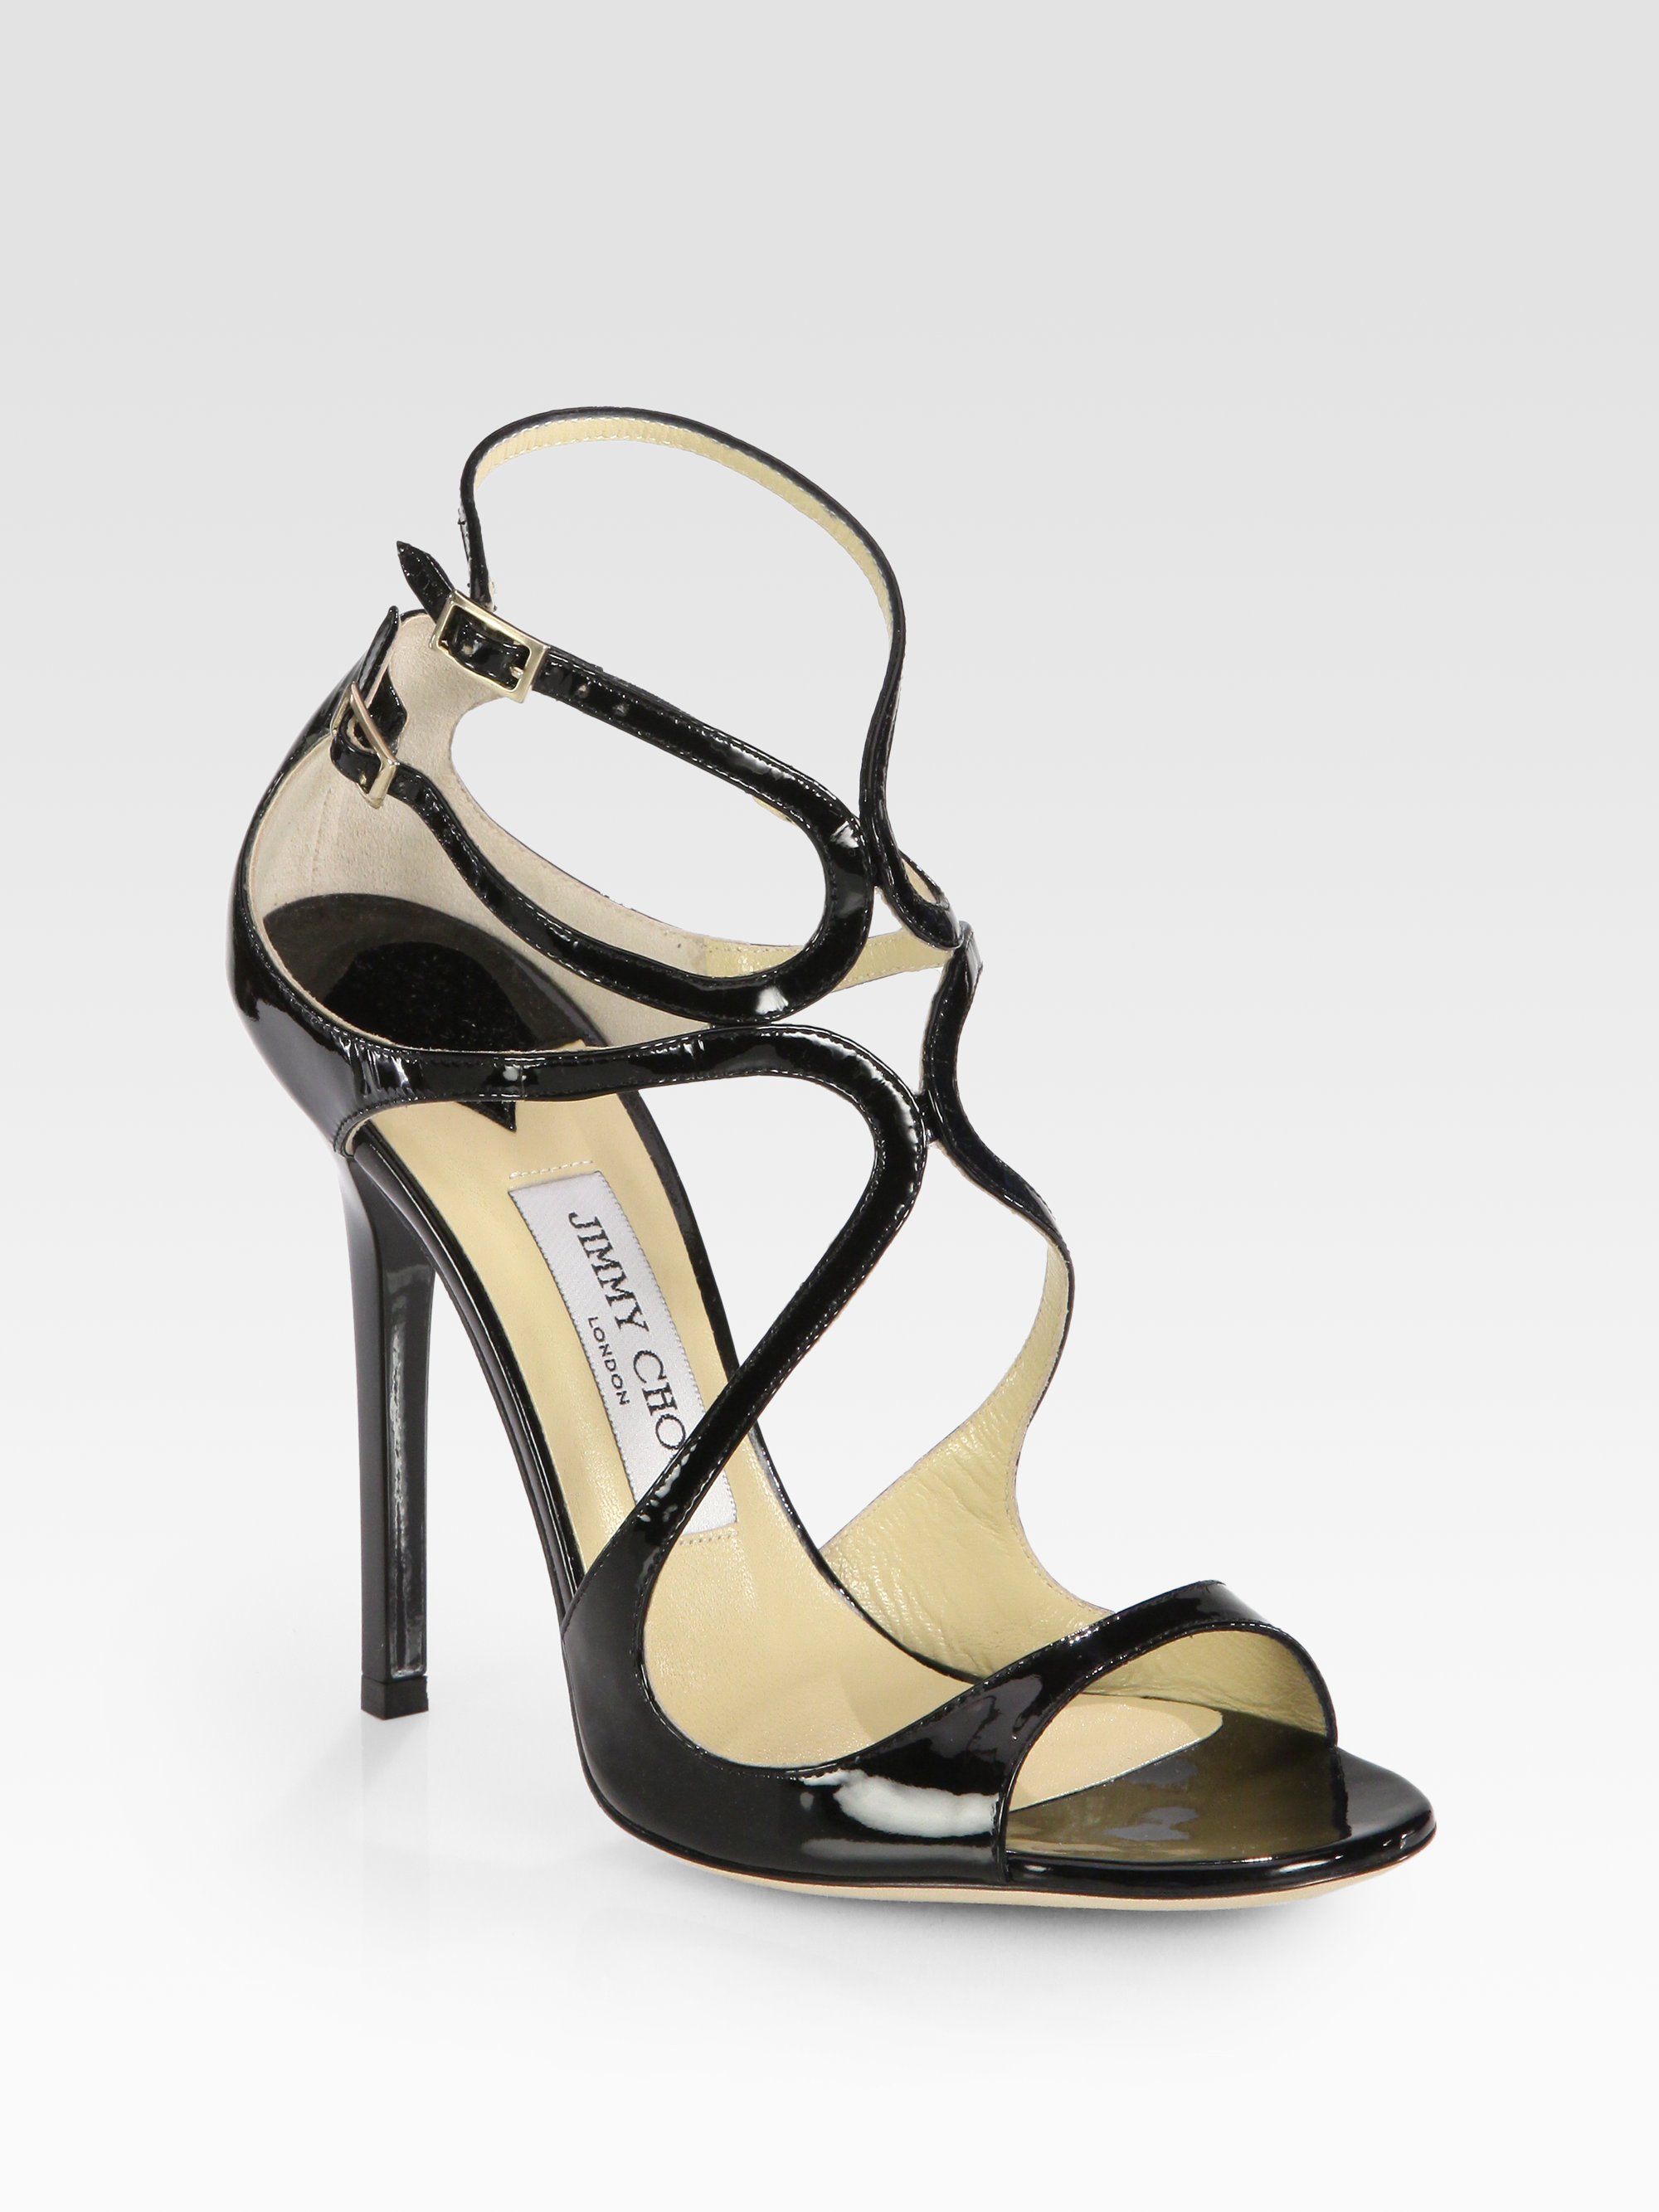 d5e1484400fb Lyst - Jimmy Choo Lance Strappy Patent Leather Sandals in Black